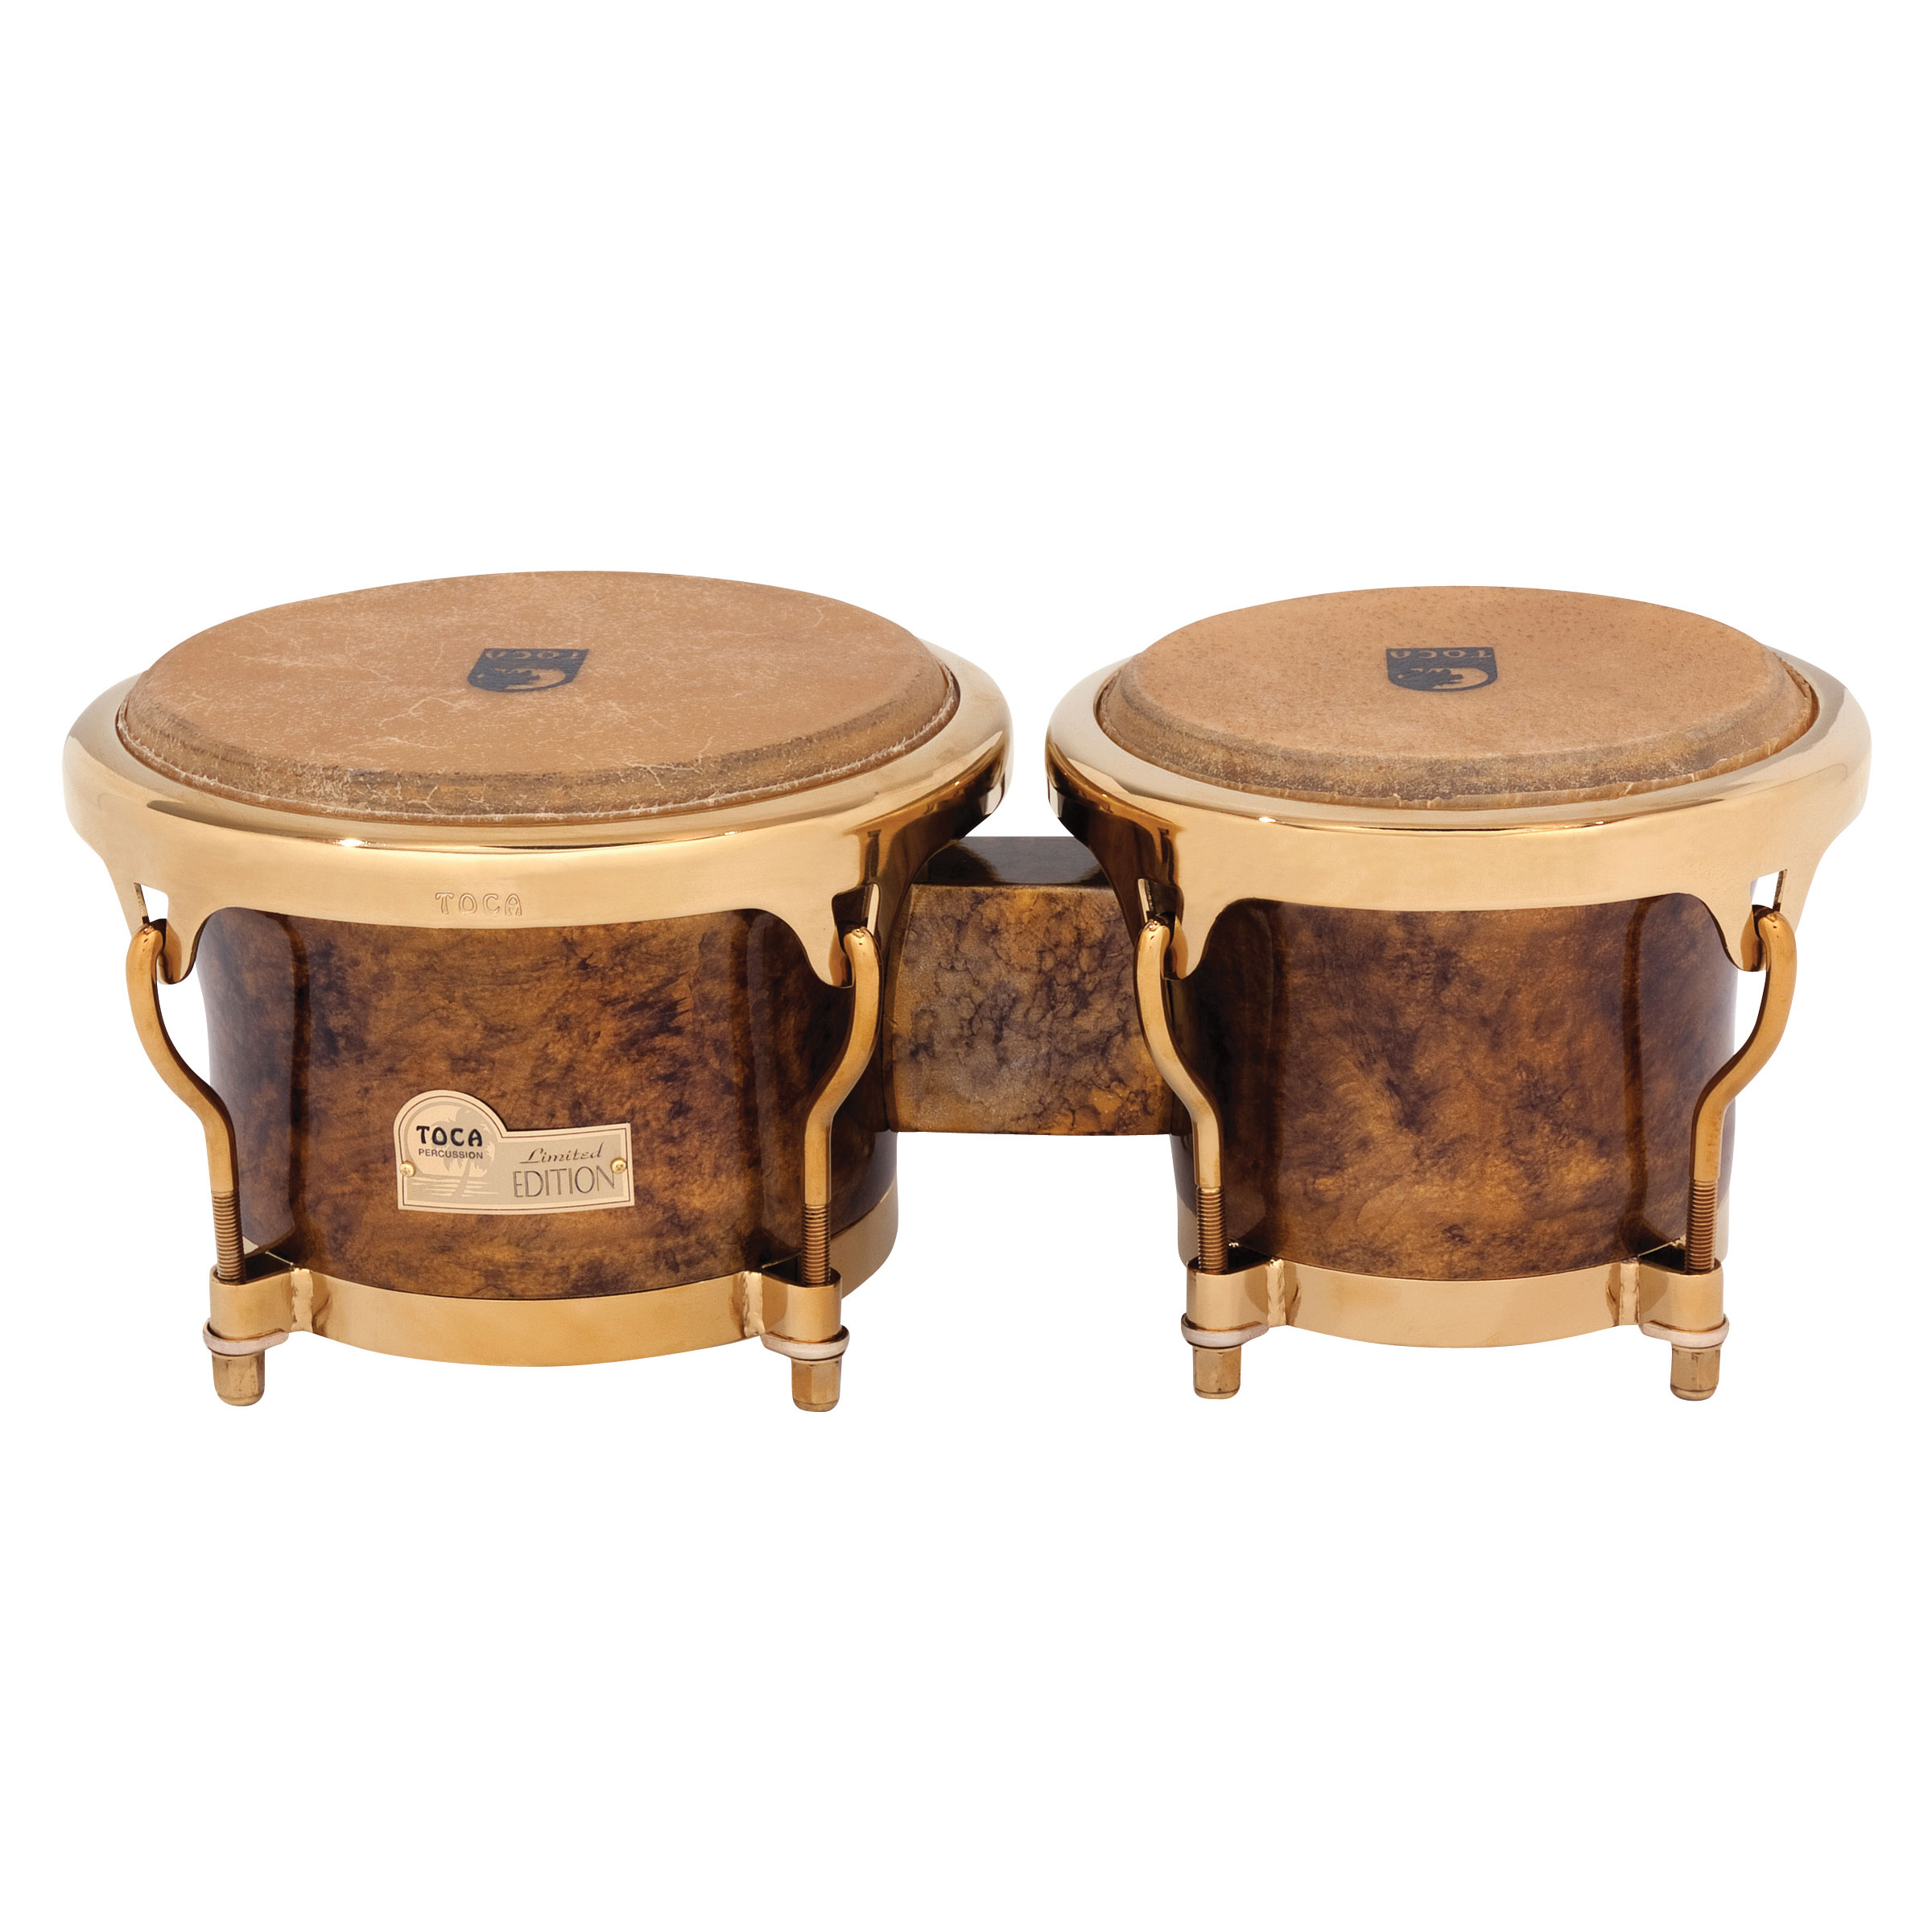 "Toca 7"" & 8.5"" Limited Edition Bongos"